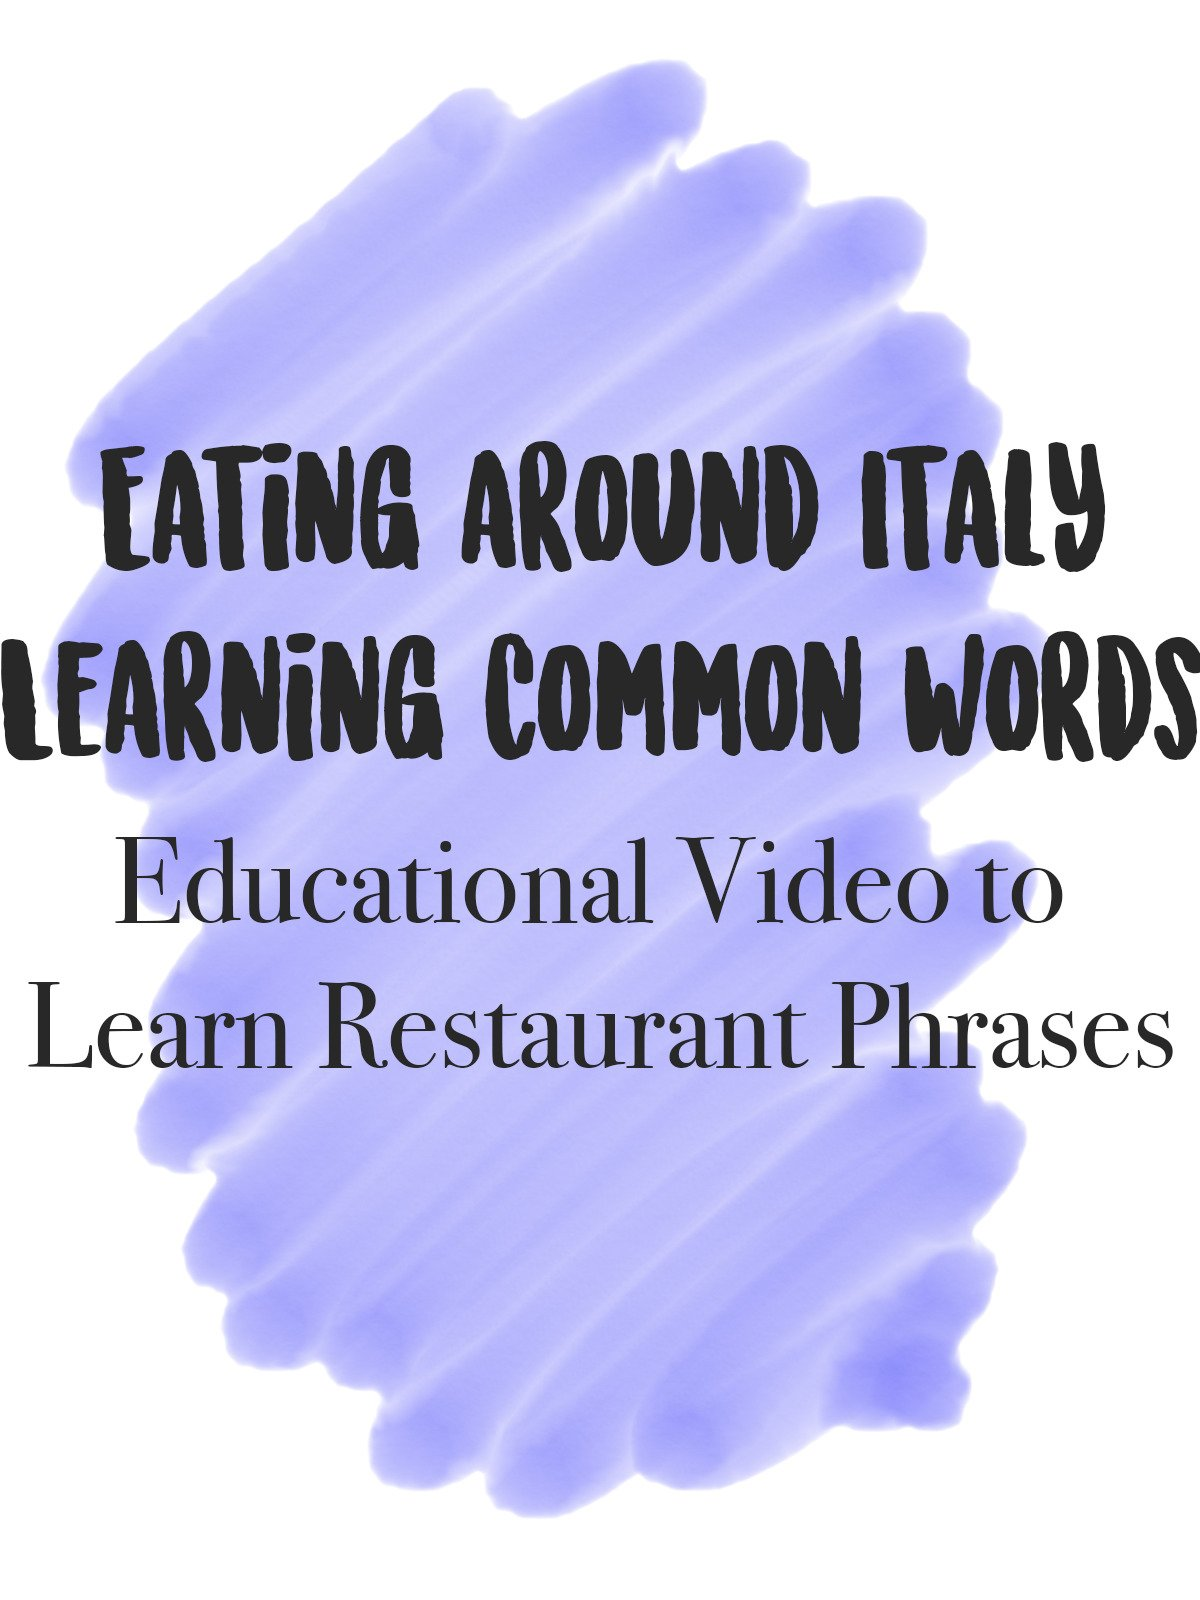 Eating Around Italy Learning Common Words Educational Video to Learn Restaurant Phrases